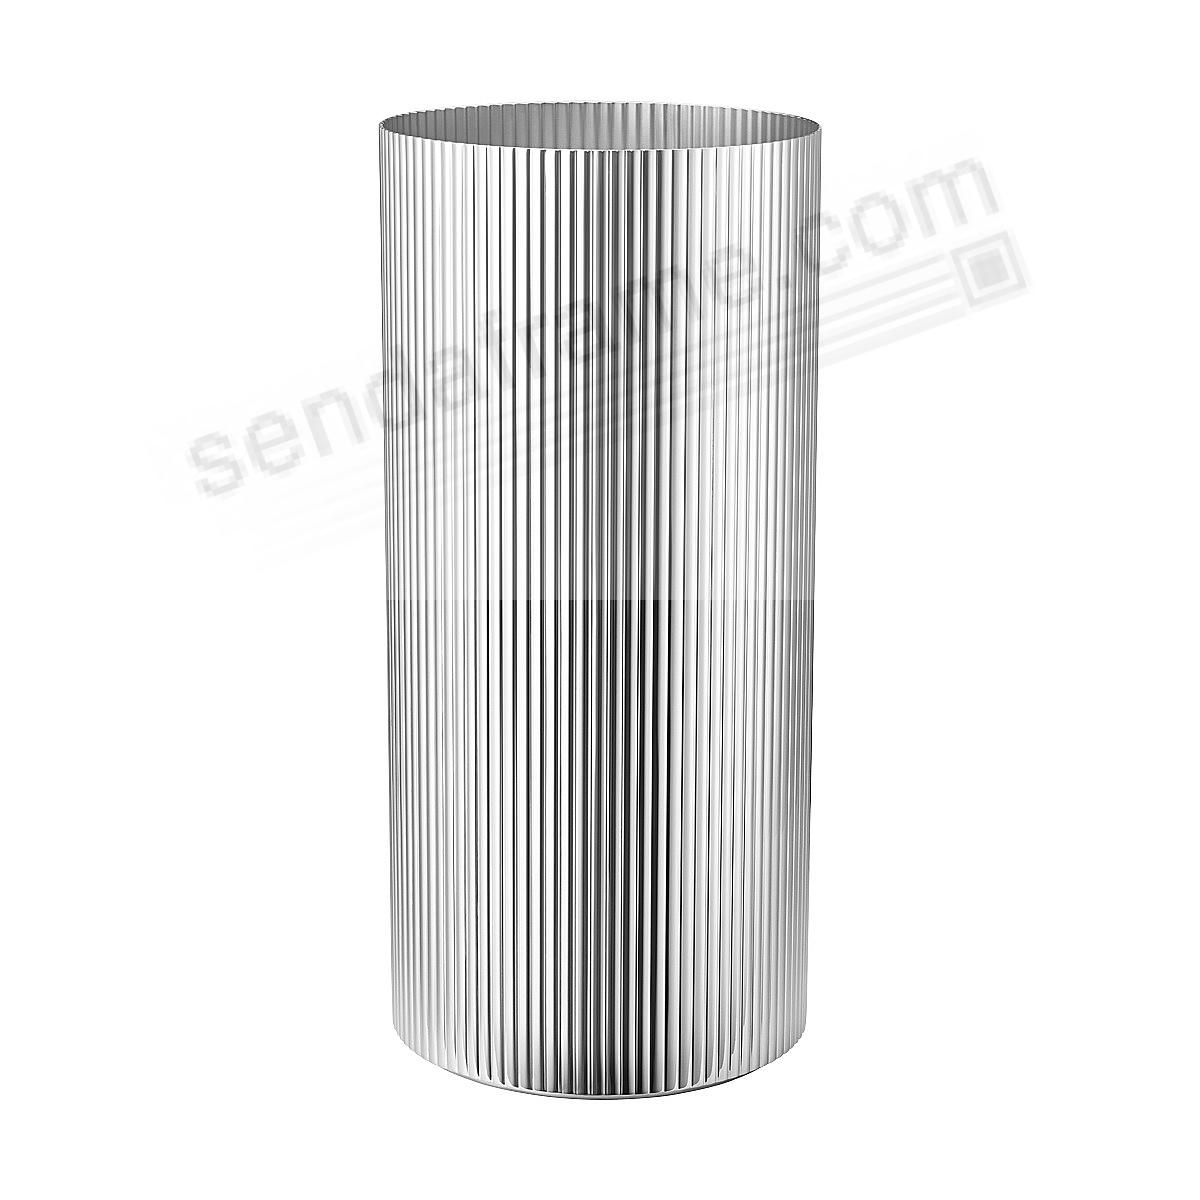 The BERNADOTTE VASE (LG - 10in) Stainless Steel by Georg Jensen®